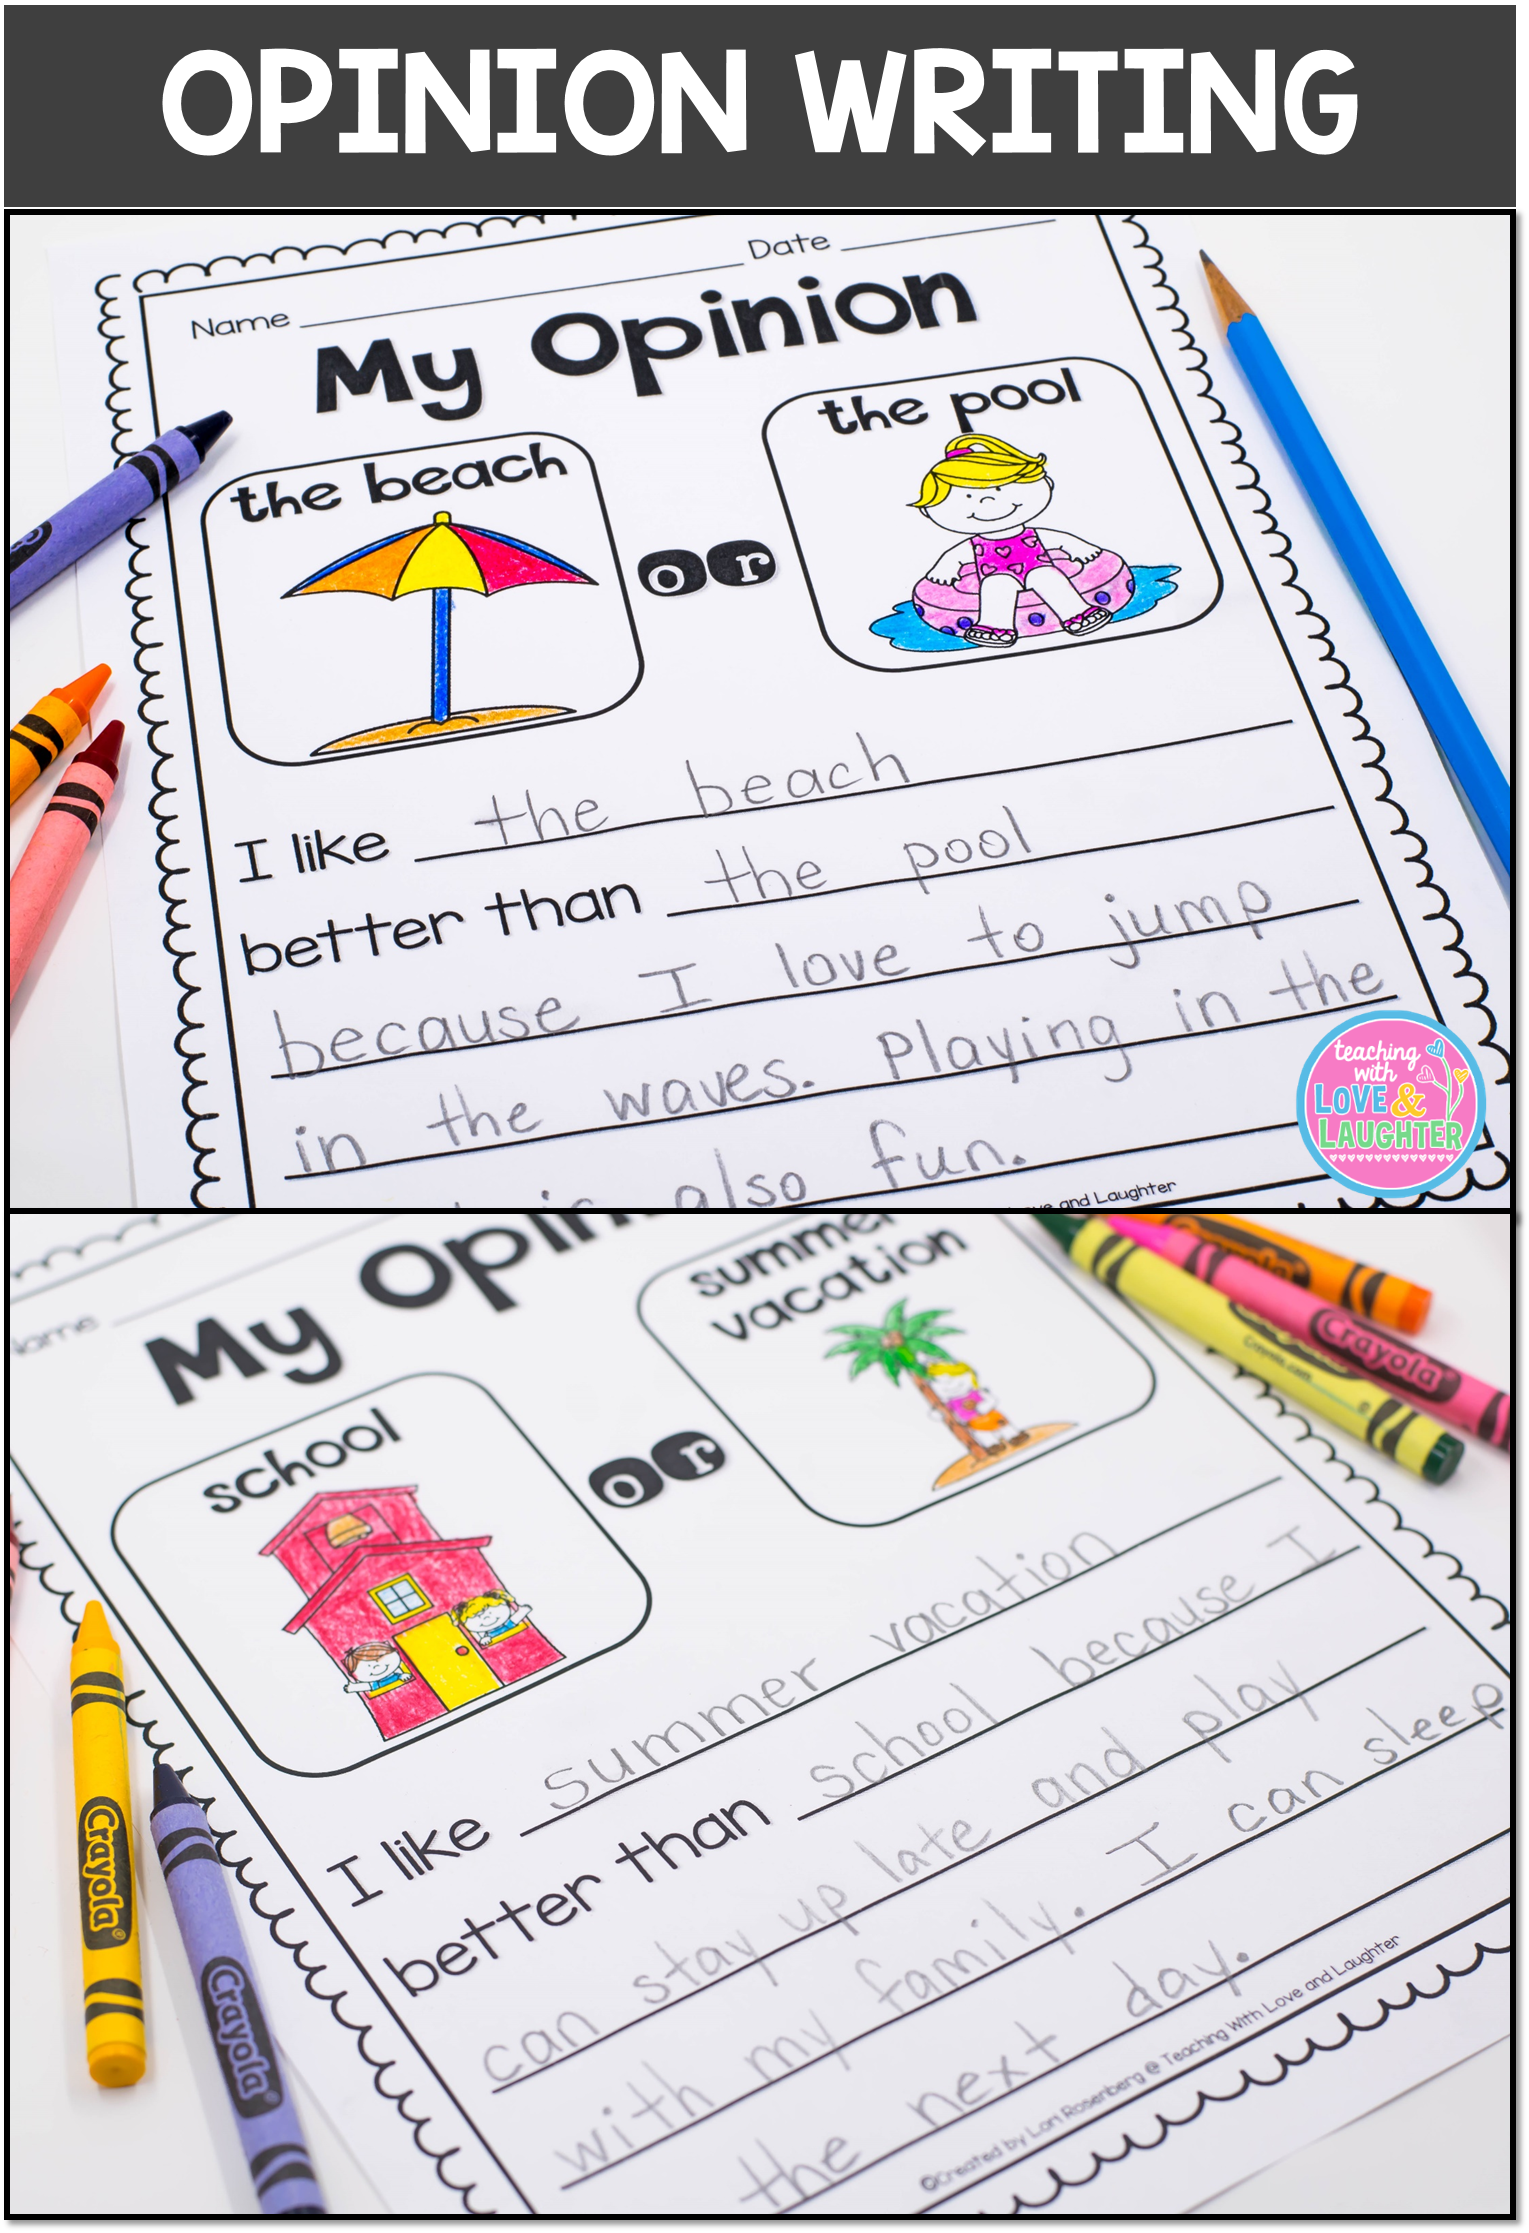 to Writing Right Through April, May, June, and July! This series contains seasonal and theme related writing activities for each month of the year. All of the activities are differentiated and contain the right amount of support for developing writers to be successful. Activities with less support are also included for beg...